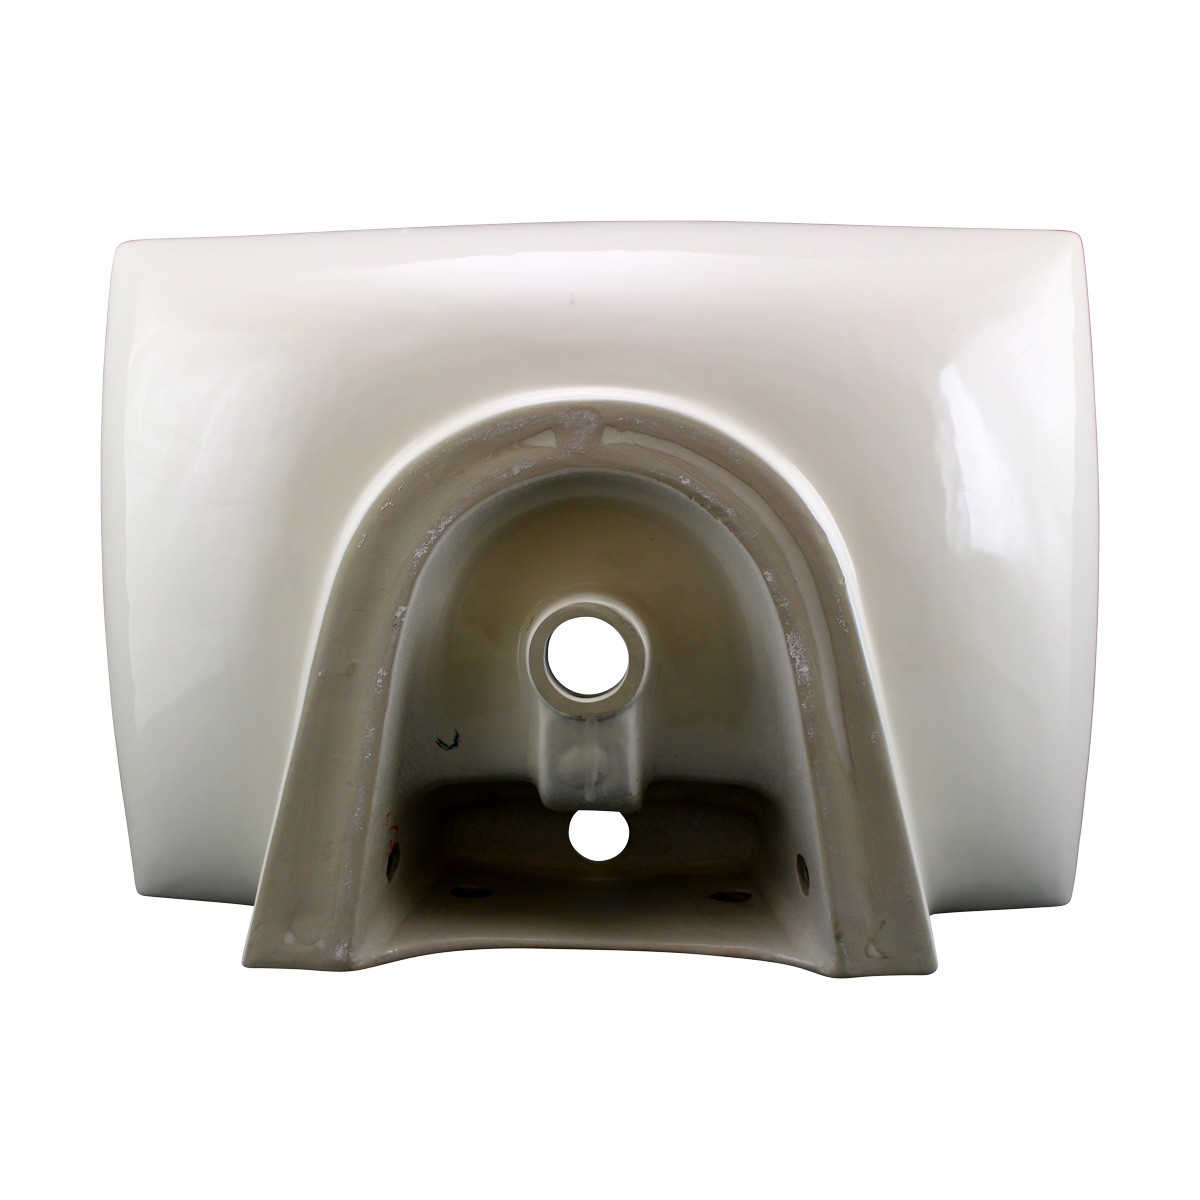 Renovators Supply Bathroom Sink Vitreous China Square Vessel Counter Top classic traditional vintage antique authentic modern contemporary diy ceramic porcelain basin remodel